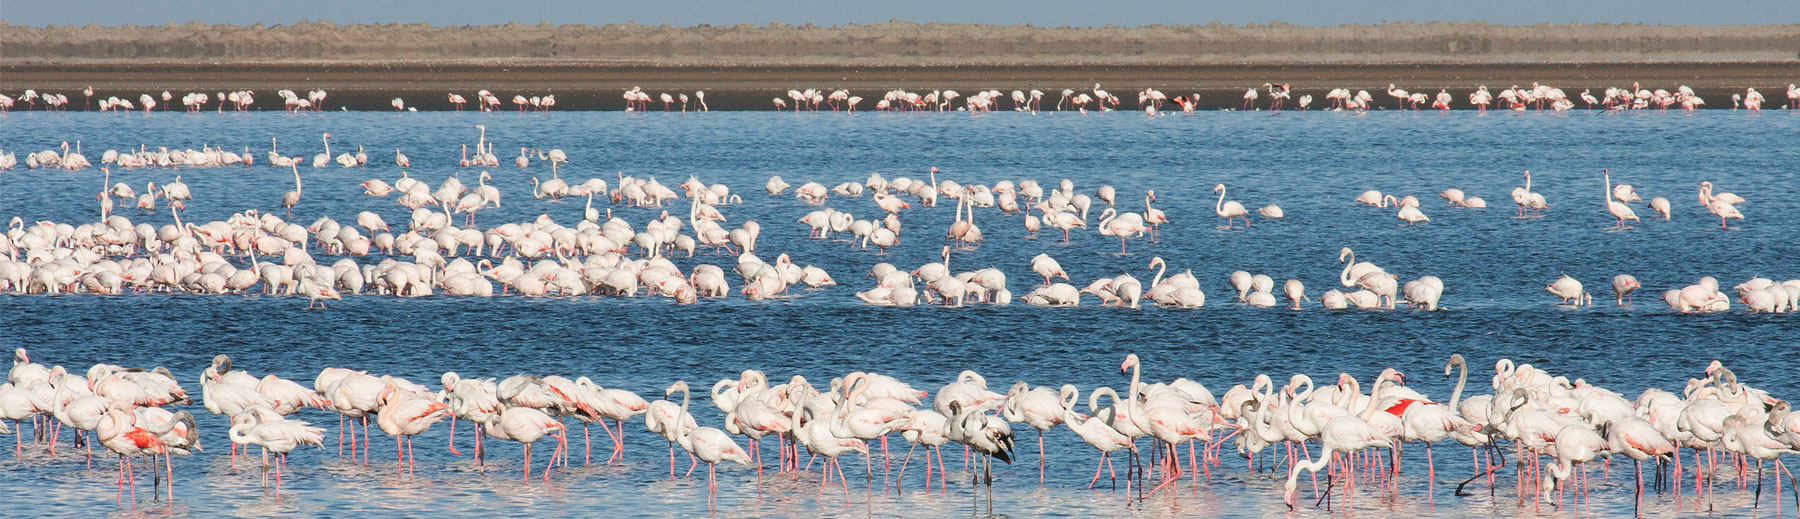 A panoramic view of thousands of flamingos at the Walvis Bay lagoon.